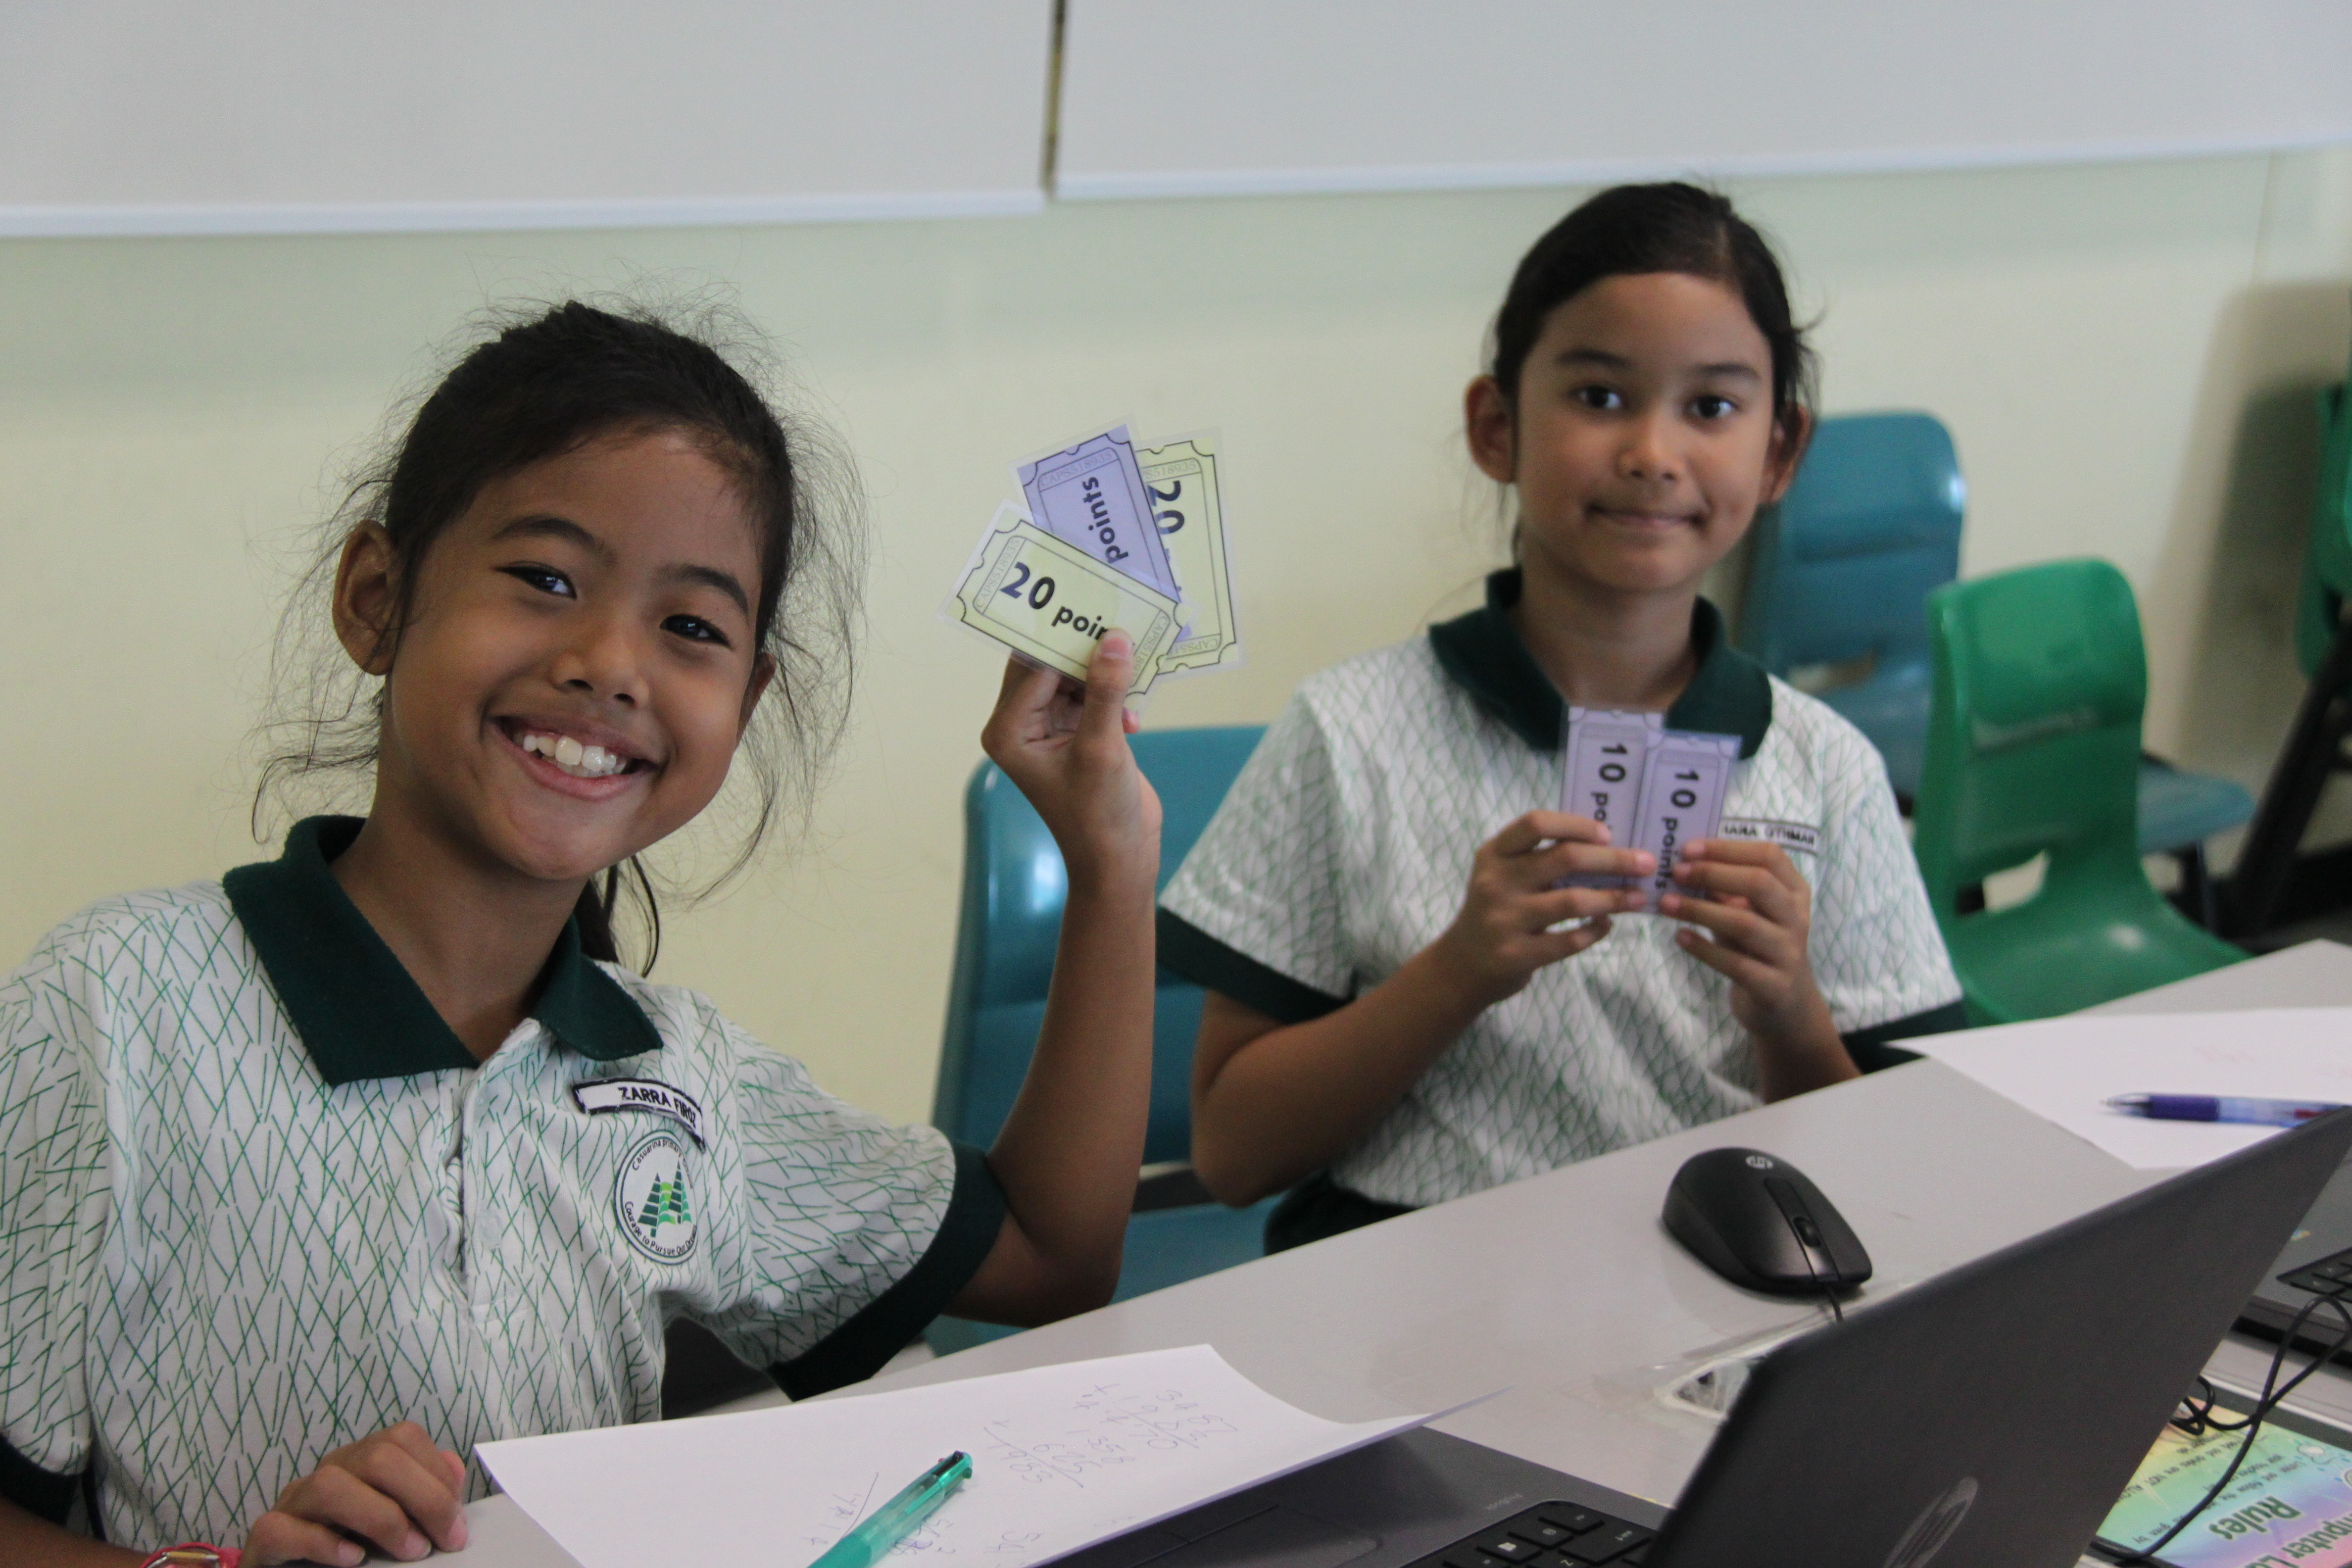 Maths@play ict casuarina student primary school games